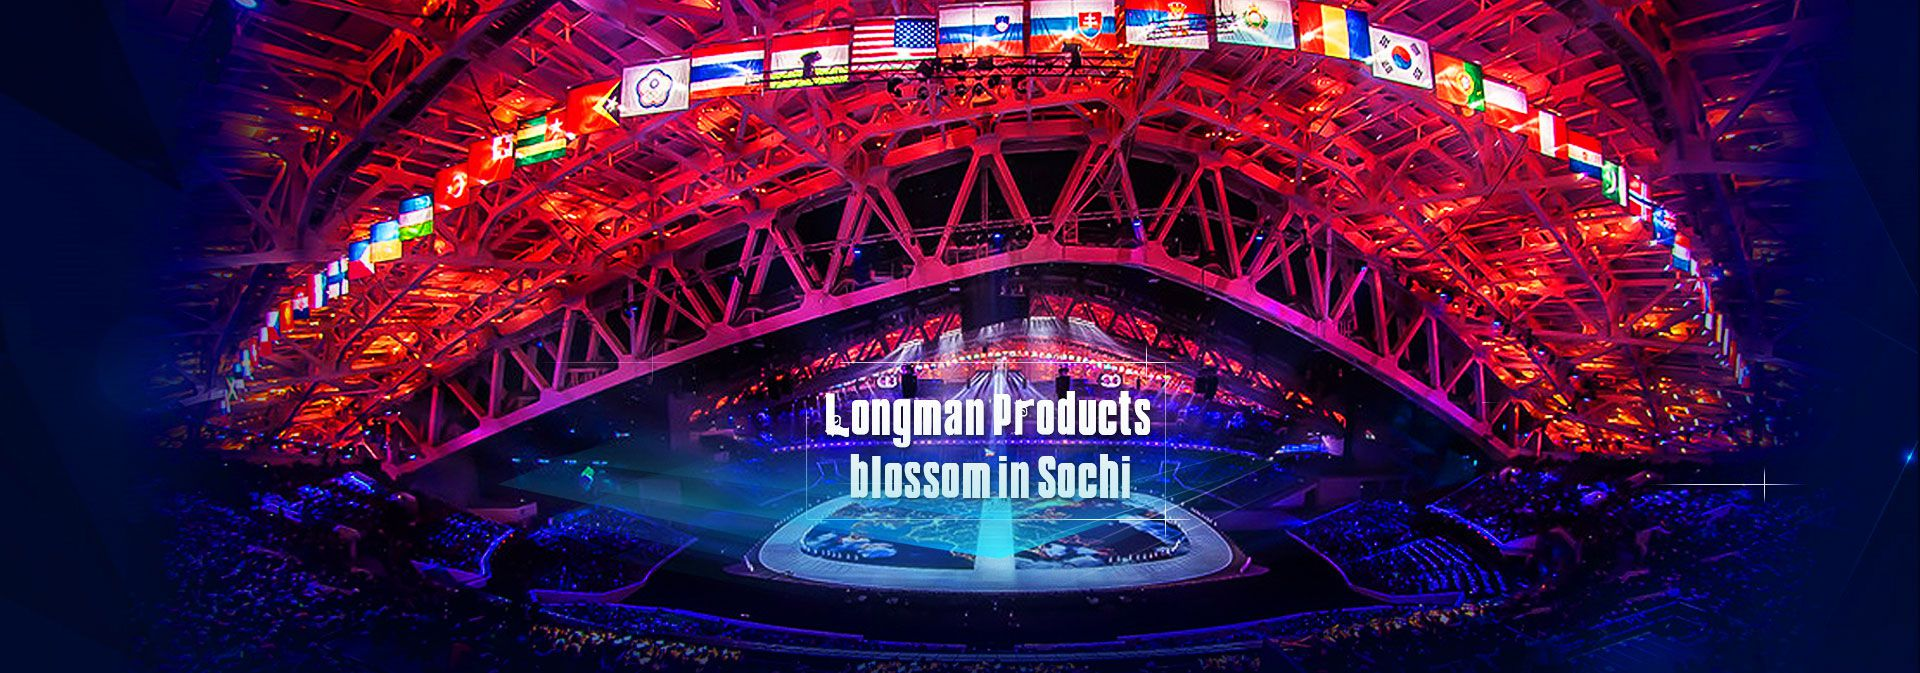 Longman lighting products blossom in Sochi